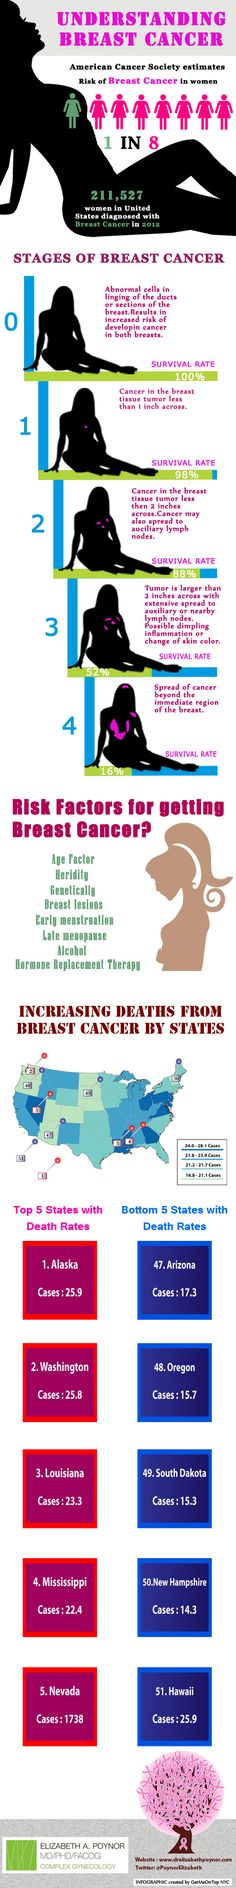 Find what are the differenct stages of breast cancer and risk factors of getting breast cnacer, and how abnormal cells in linging of the ducts or sections of the breast results in increased risk of developing cancer. For related information regarding breast cancer NYC visit to Drelizabethpoynor.com. #breastcancertreatmentcenters #bestbreastcancersurgeonsinnyc #topbreastcancersurgeonsnyc